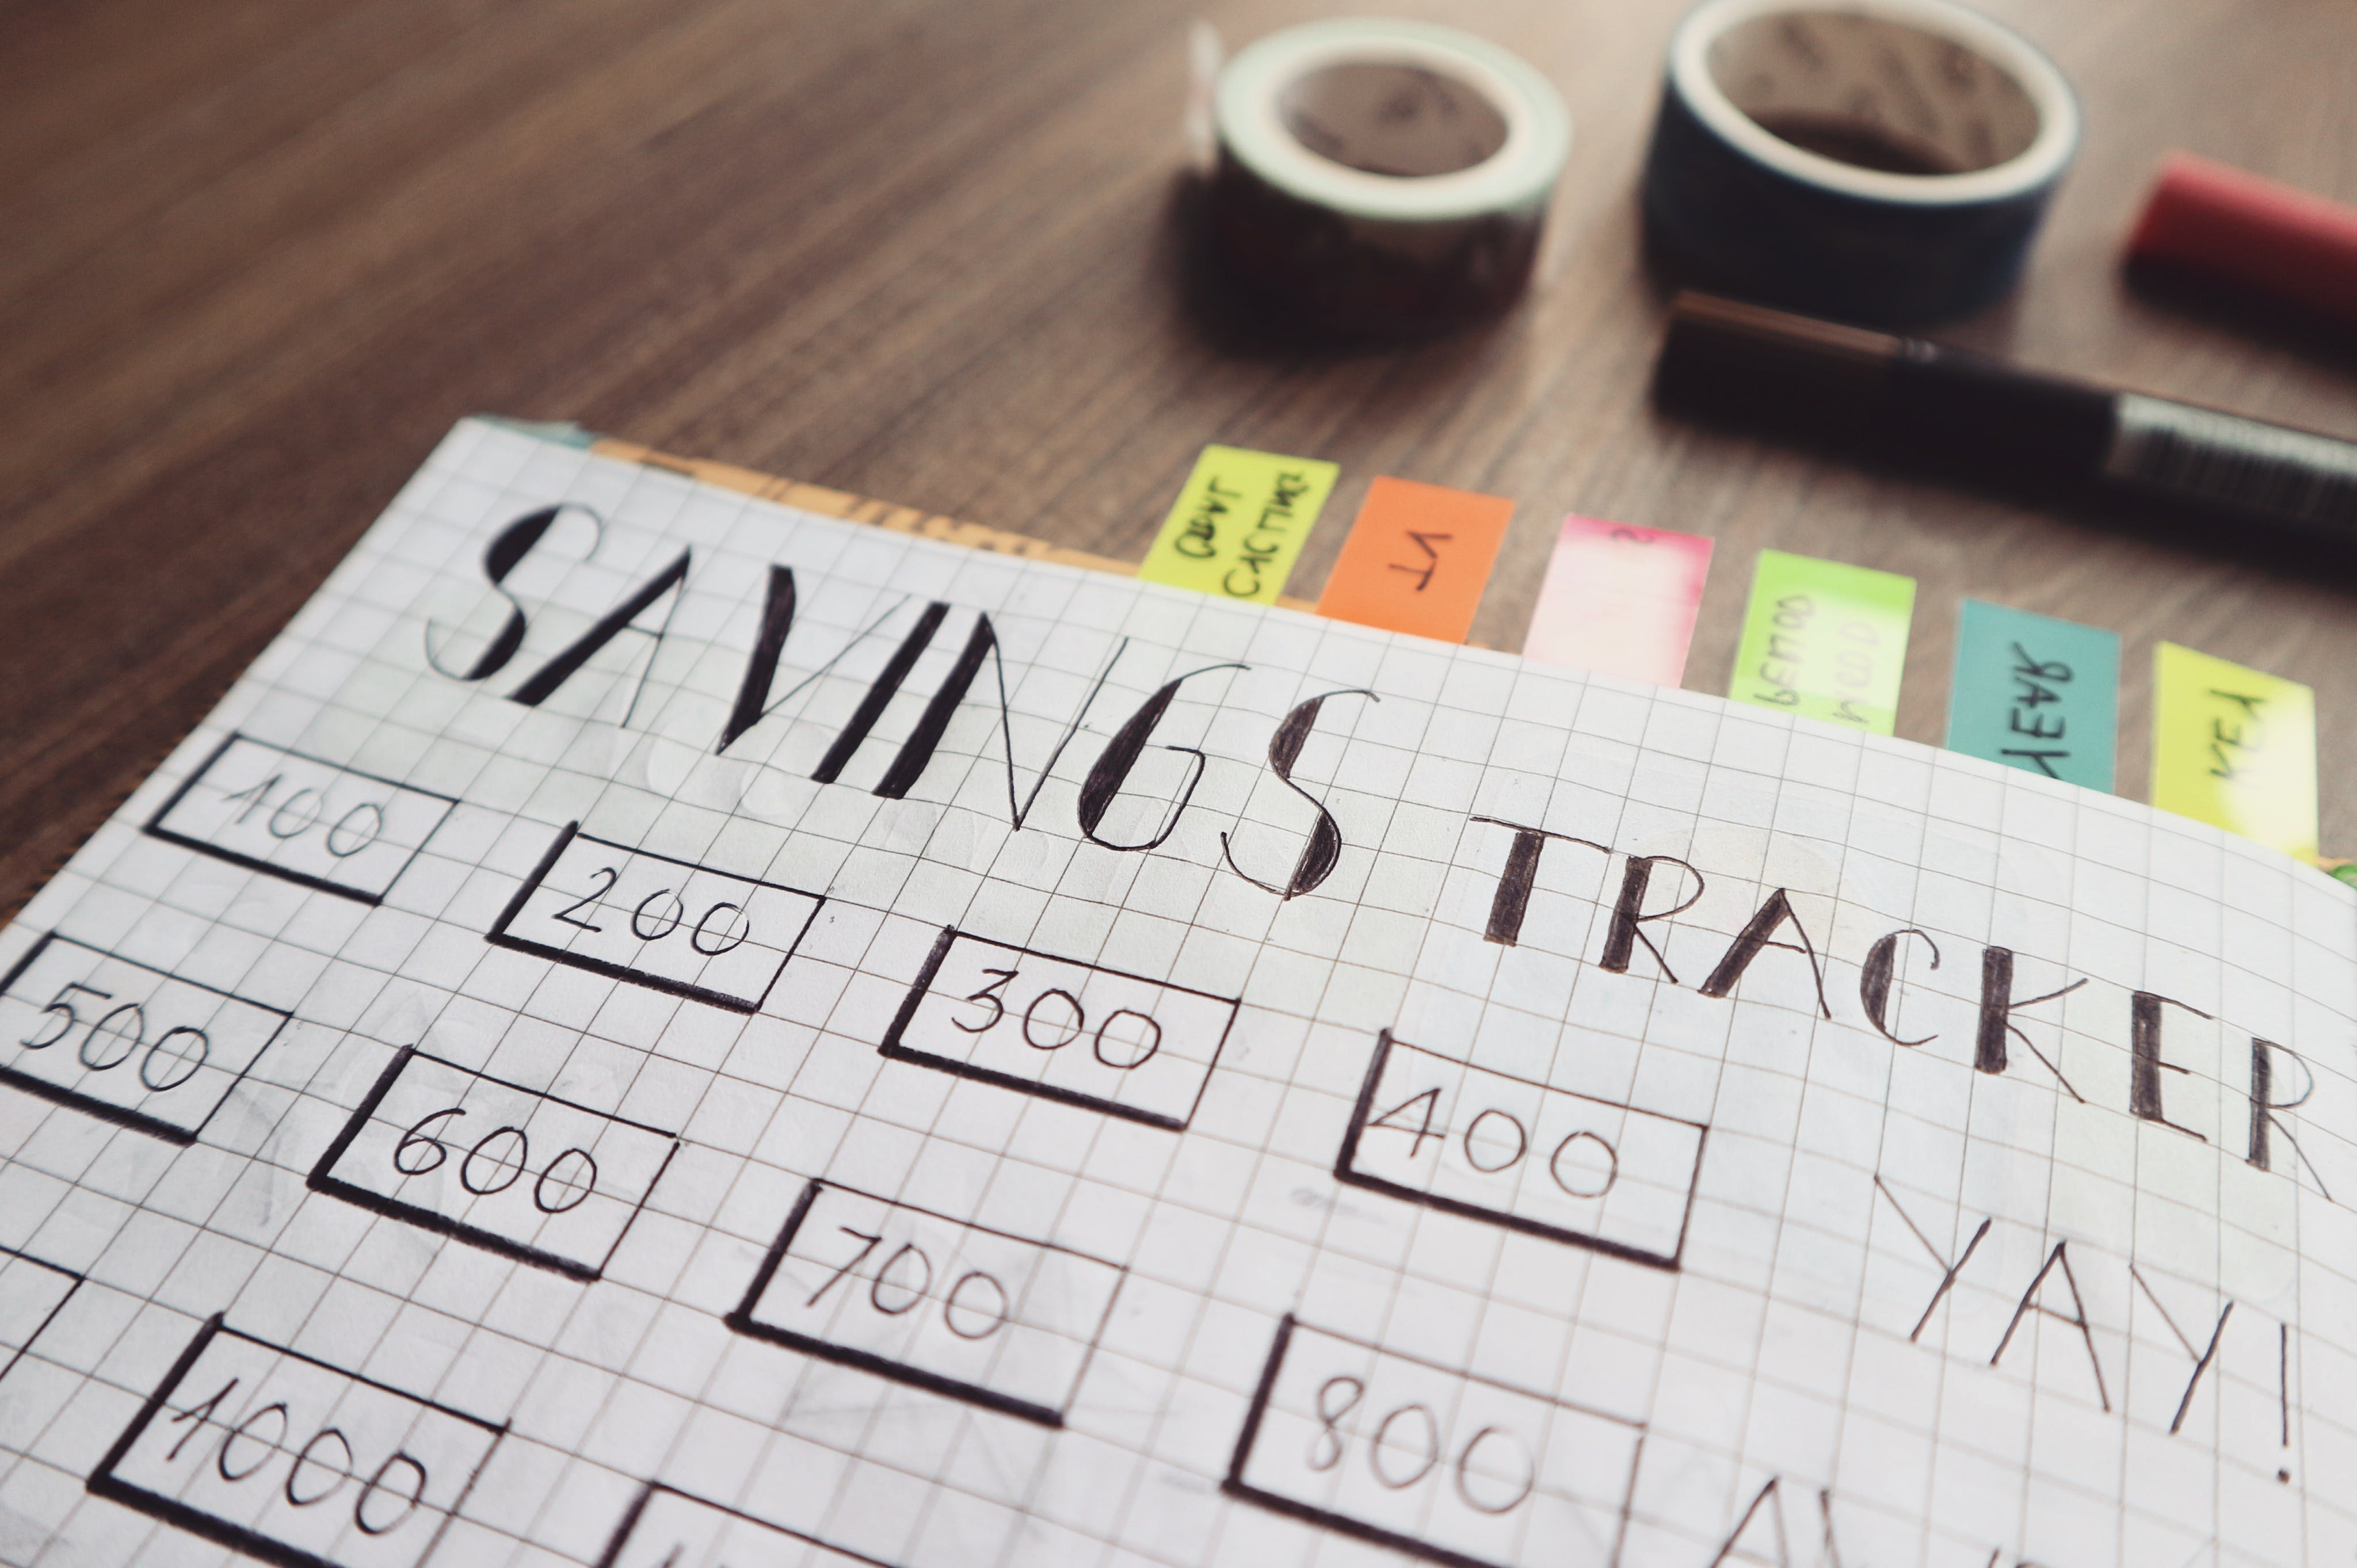 Savings Tracker on Brown Wooden Surface